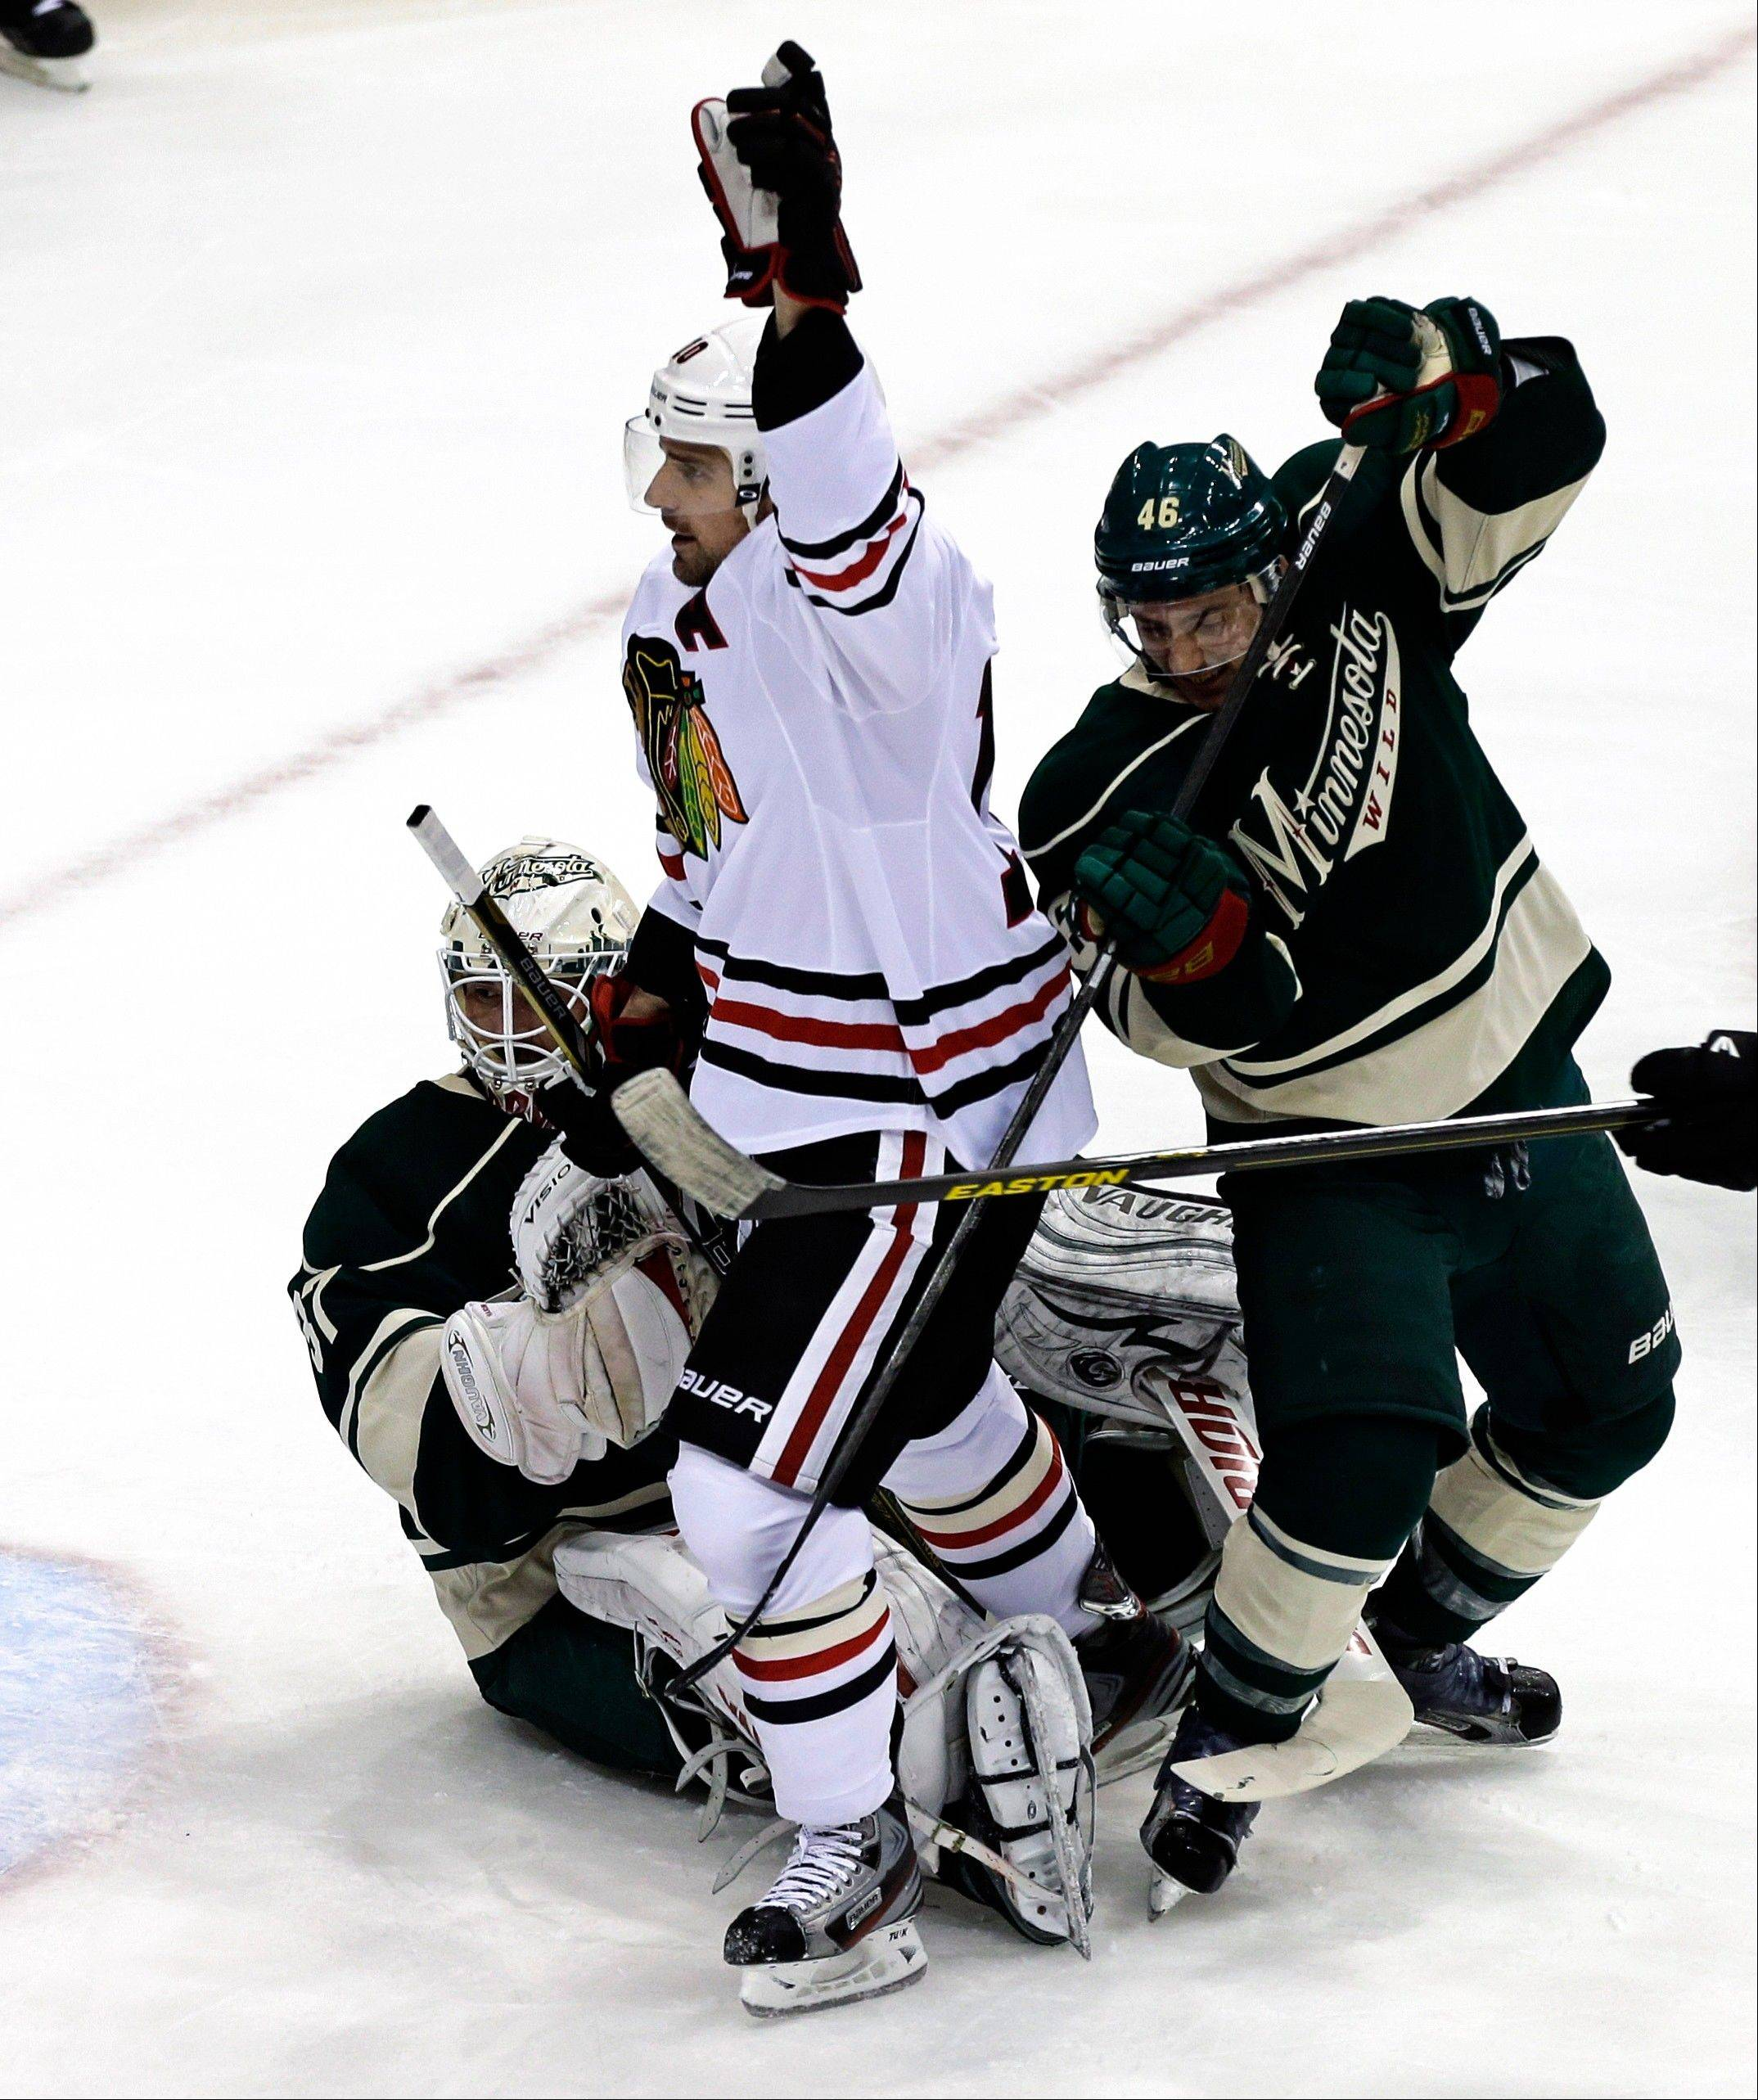 Chicago Blackhawks' Patrick Sharp, center, celebrates his goal off Minnesota Wild goalie Josh Harding, left, in the first period of Game 4 of an NHL hockey Stanley Cup playoff series, Tuesday, May 7, 2013 in St. Paul, Minn. At right is Wild's Jared Spurgeon